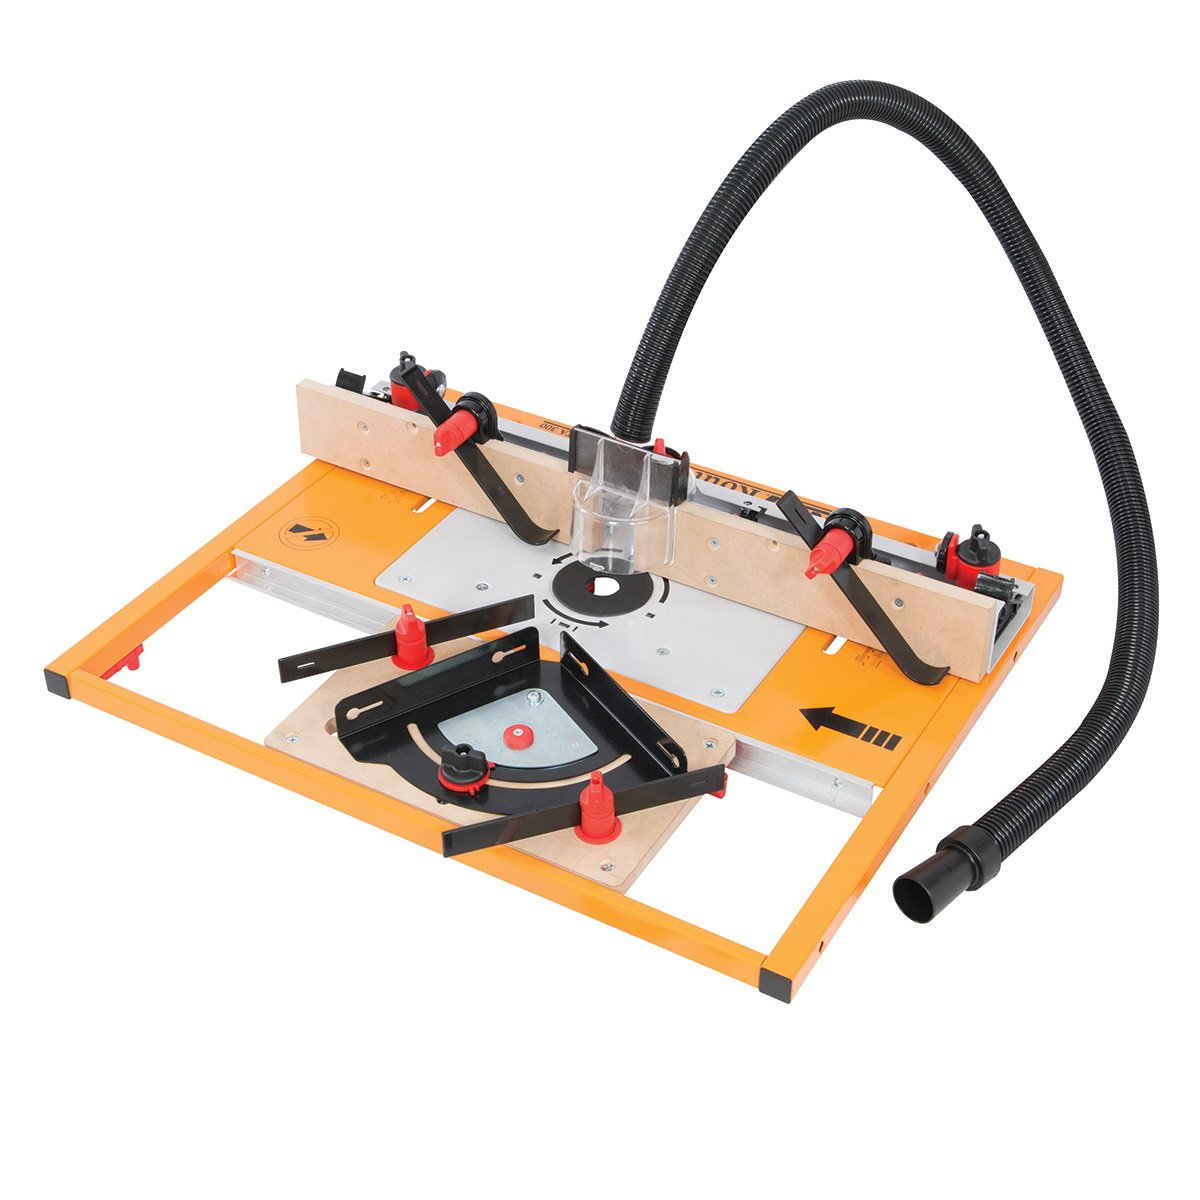 Triton precision router table rta300 amazon greentooth Choice Image